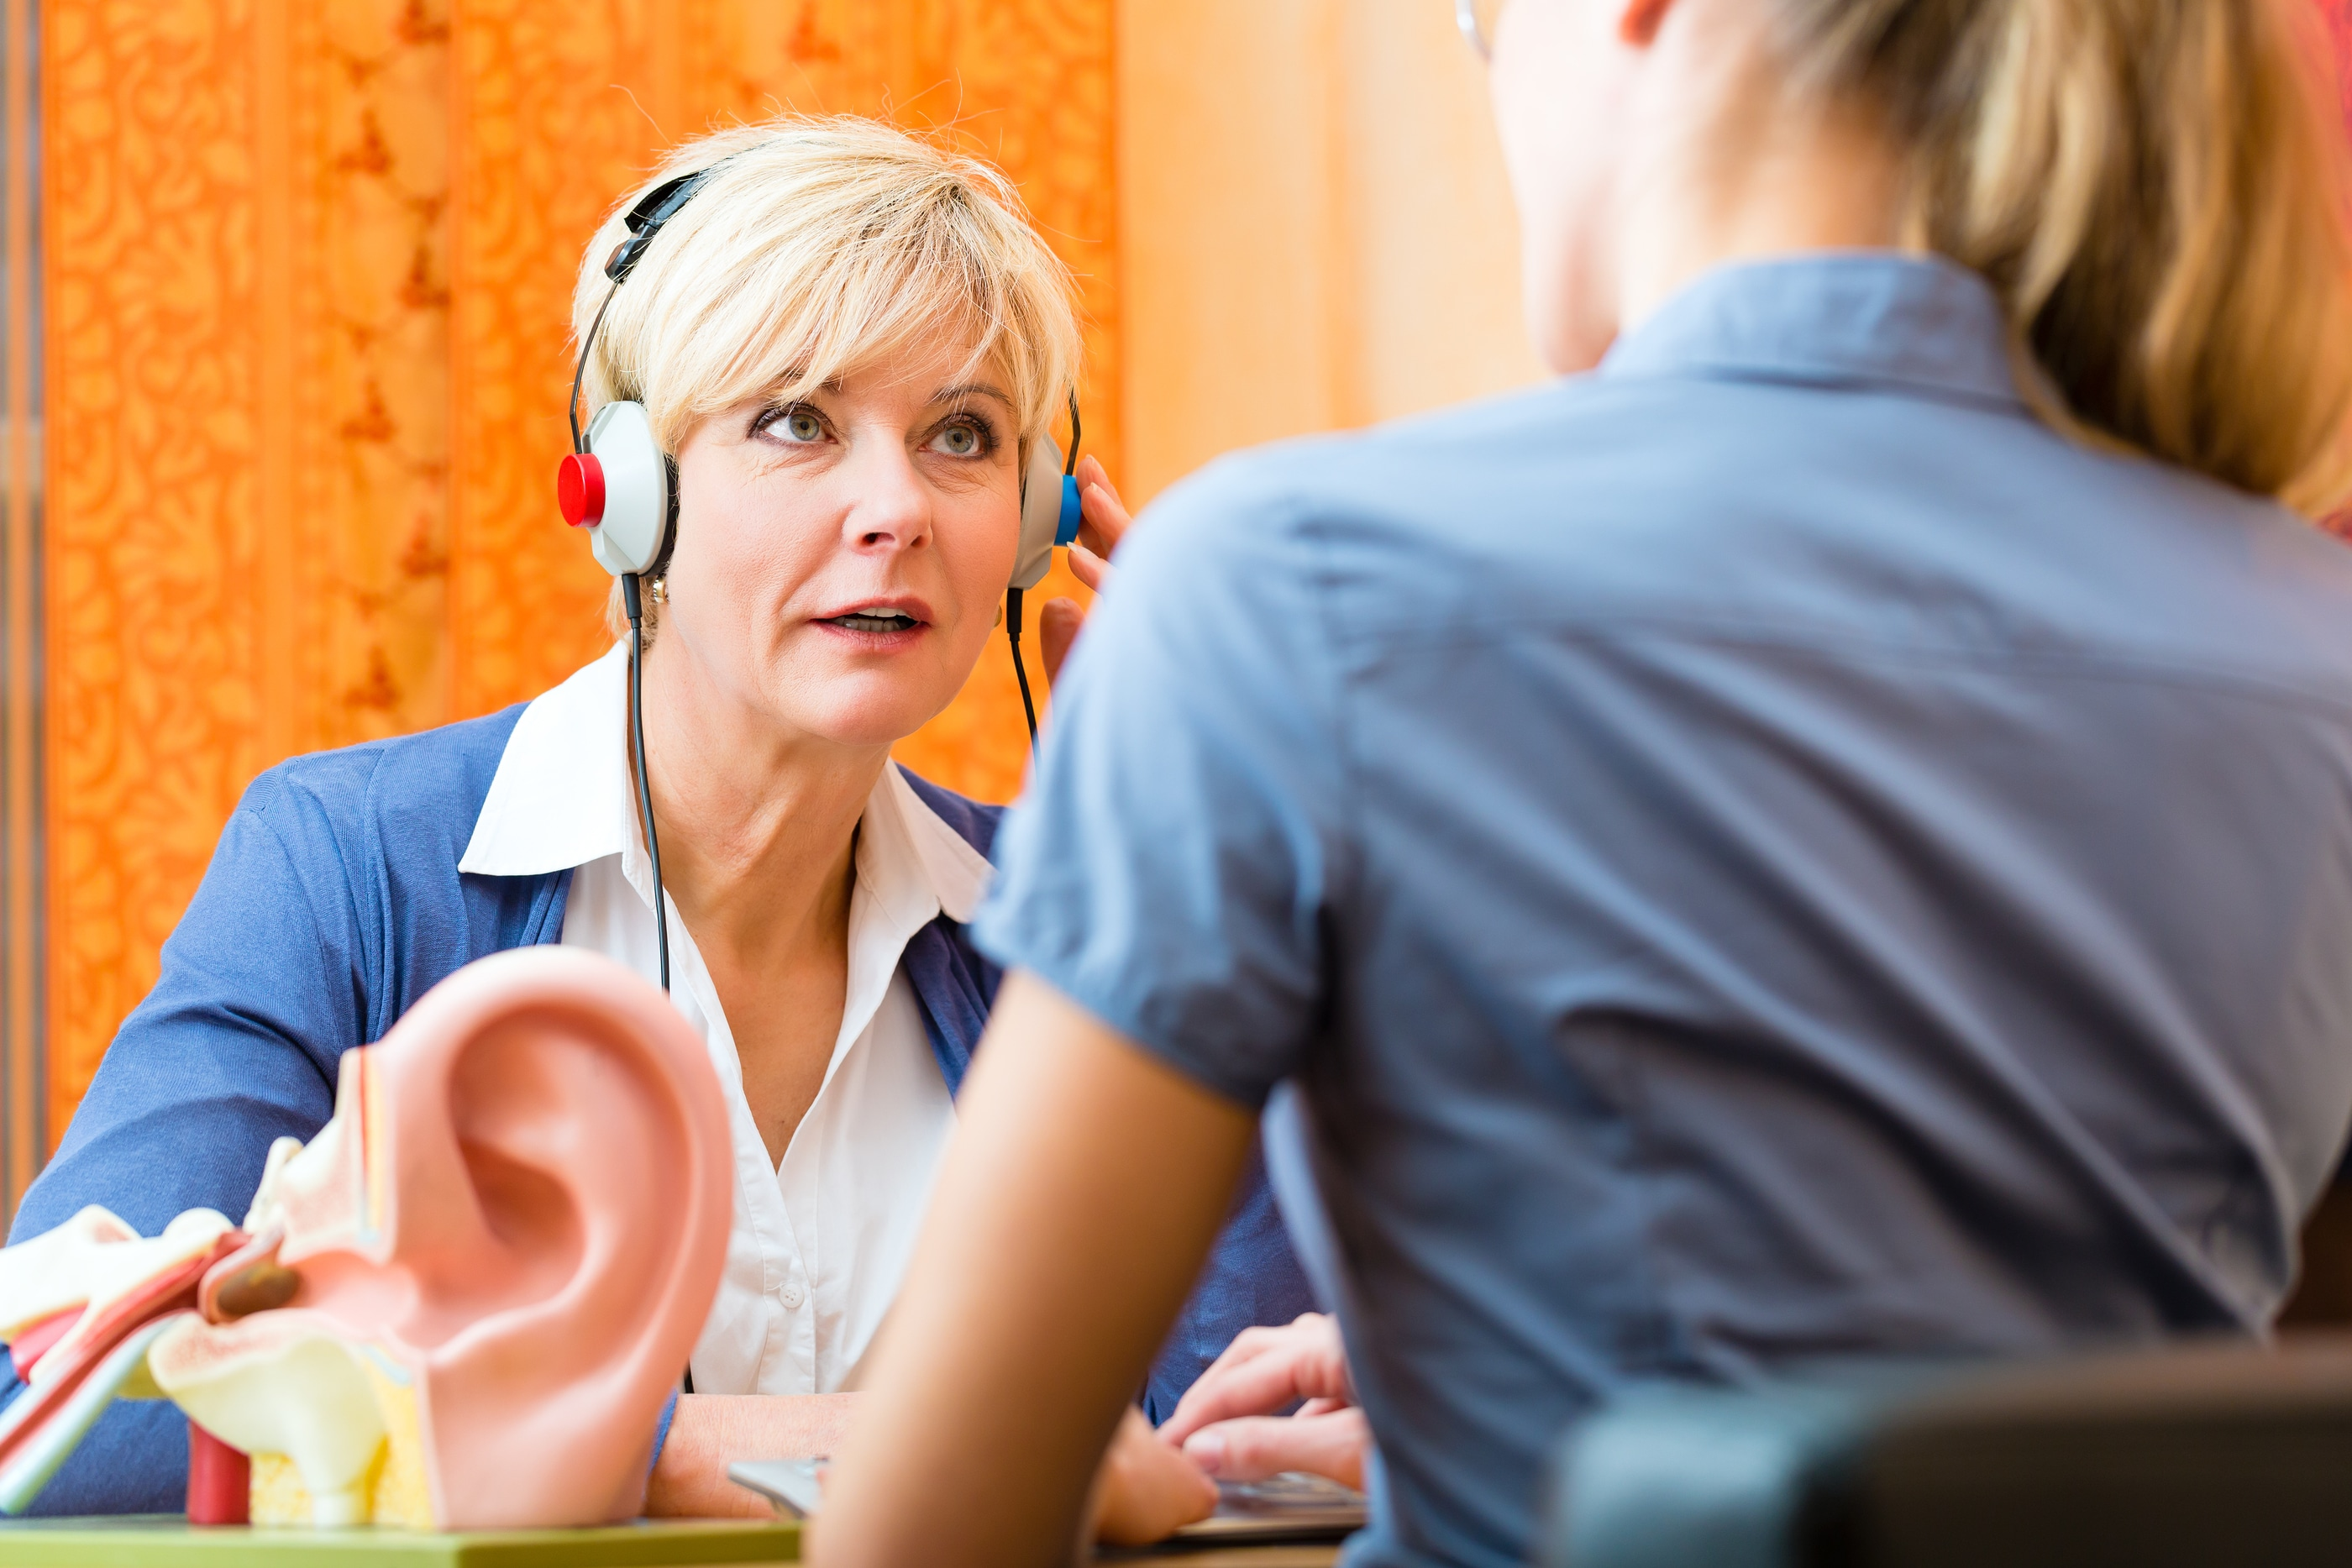 Hearing Dynamics offers hearing tests and hearing examinations for evaluating your hearing loss.